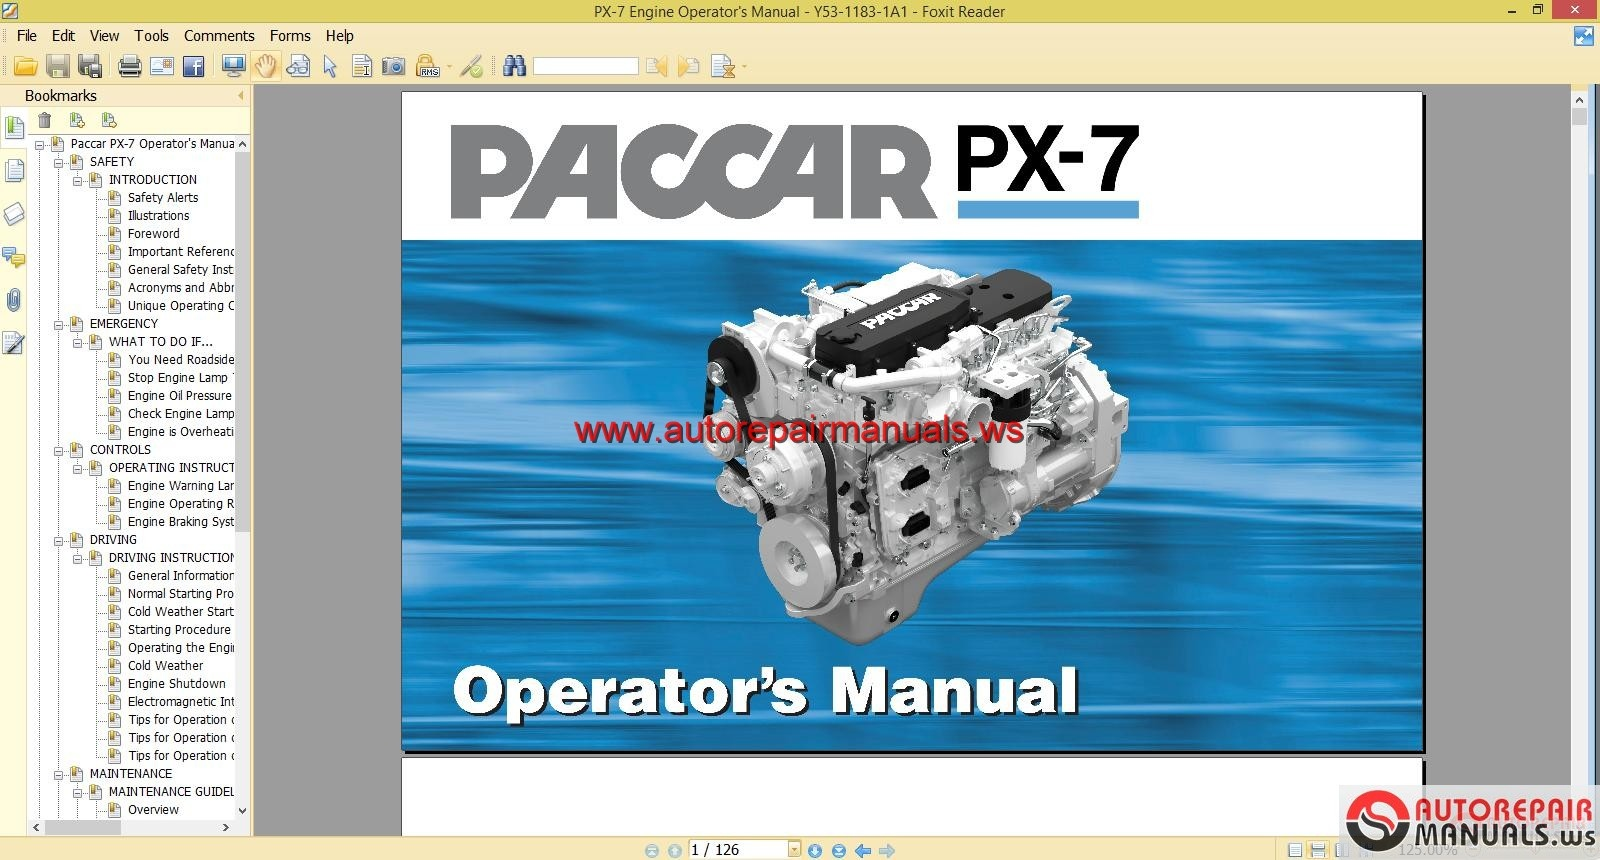 Paccar Engine Manuals Paccar Px-7 Engine Operator Manual